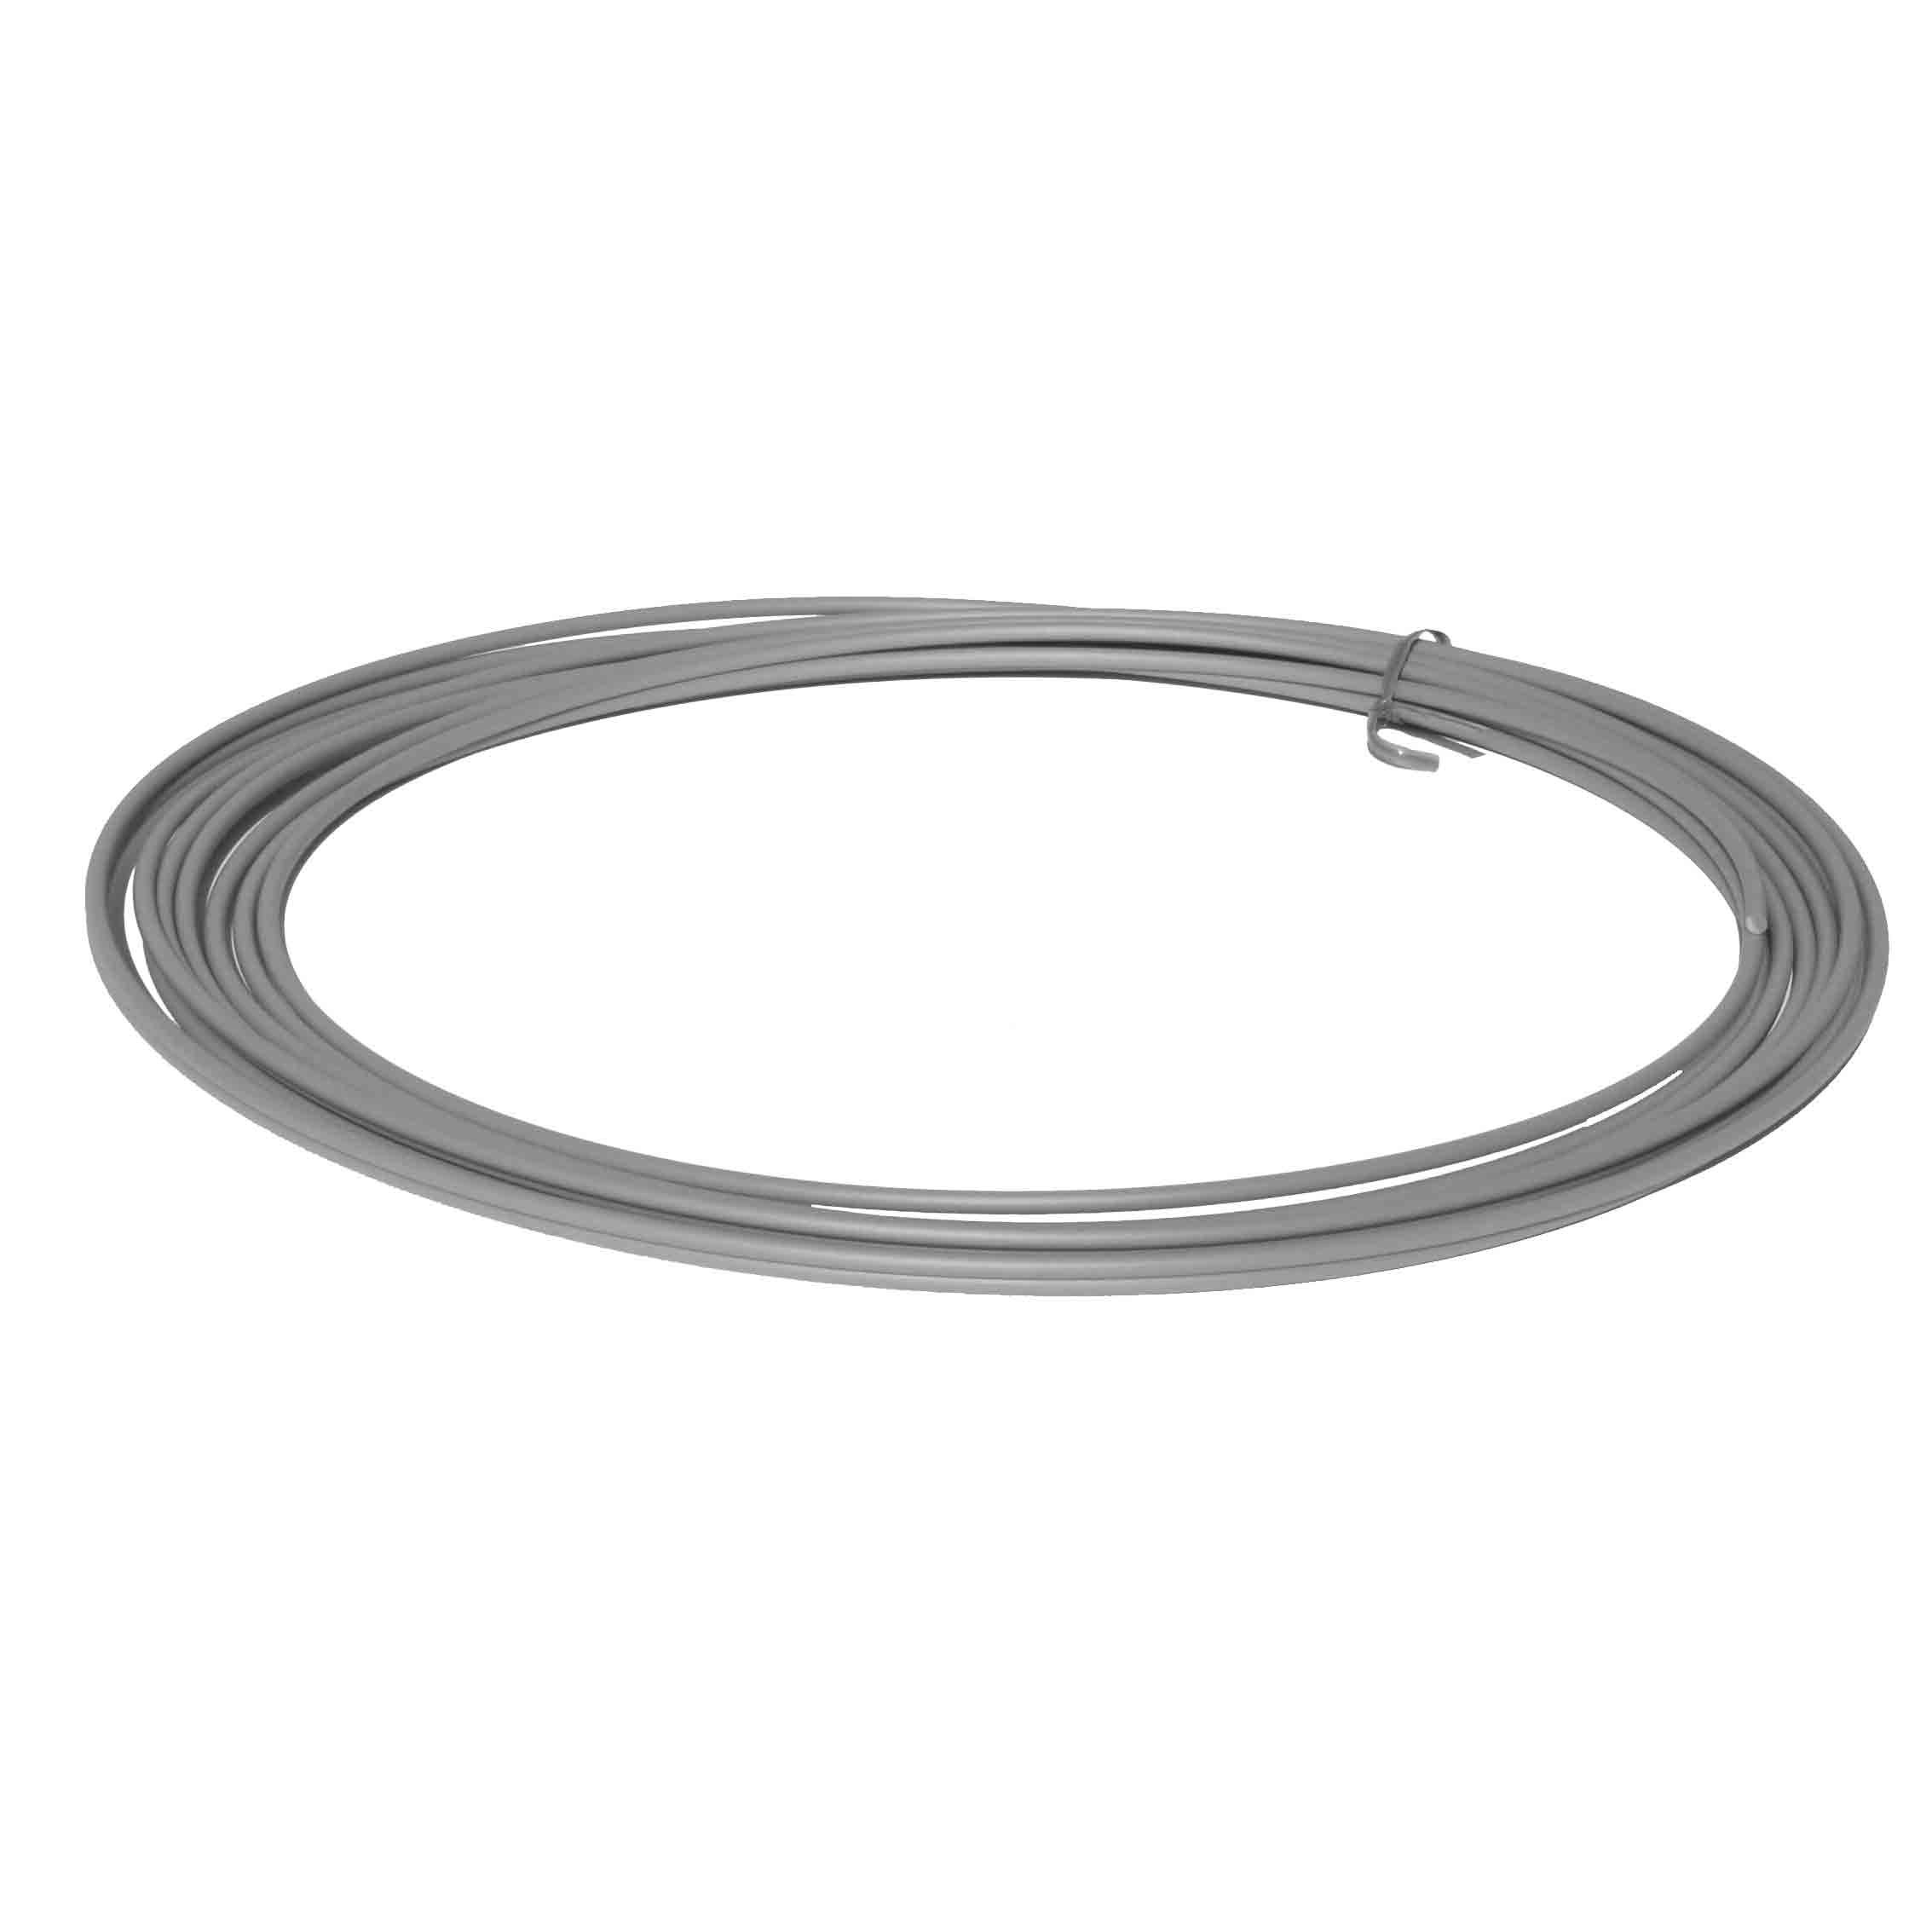 RimPro-Tec Colored Pinstripe Replacement Inner, Silver